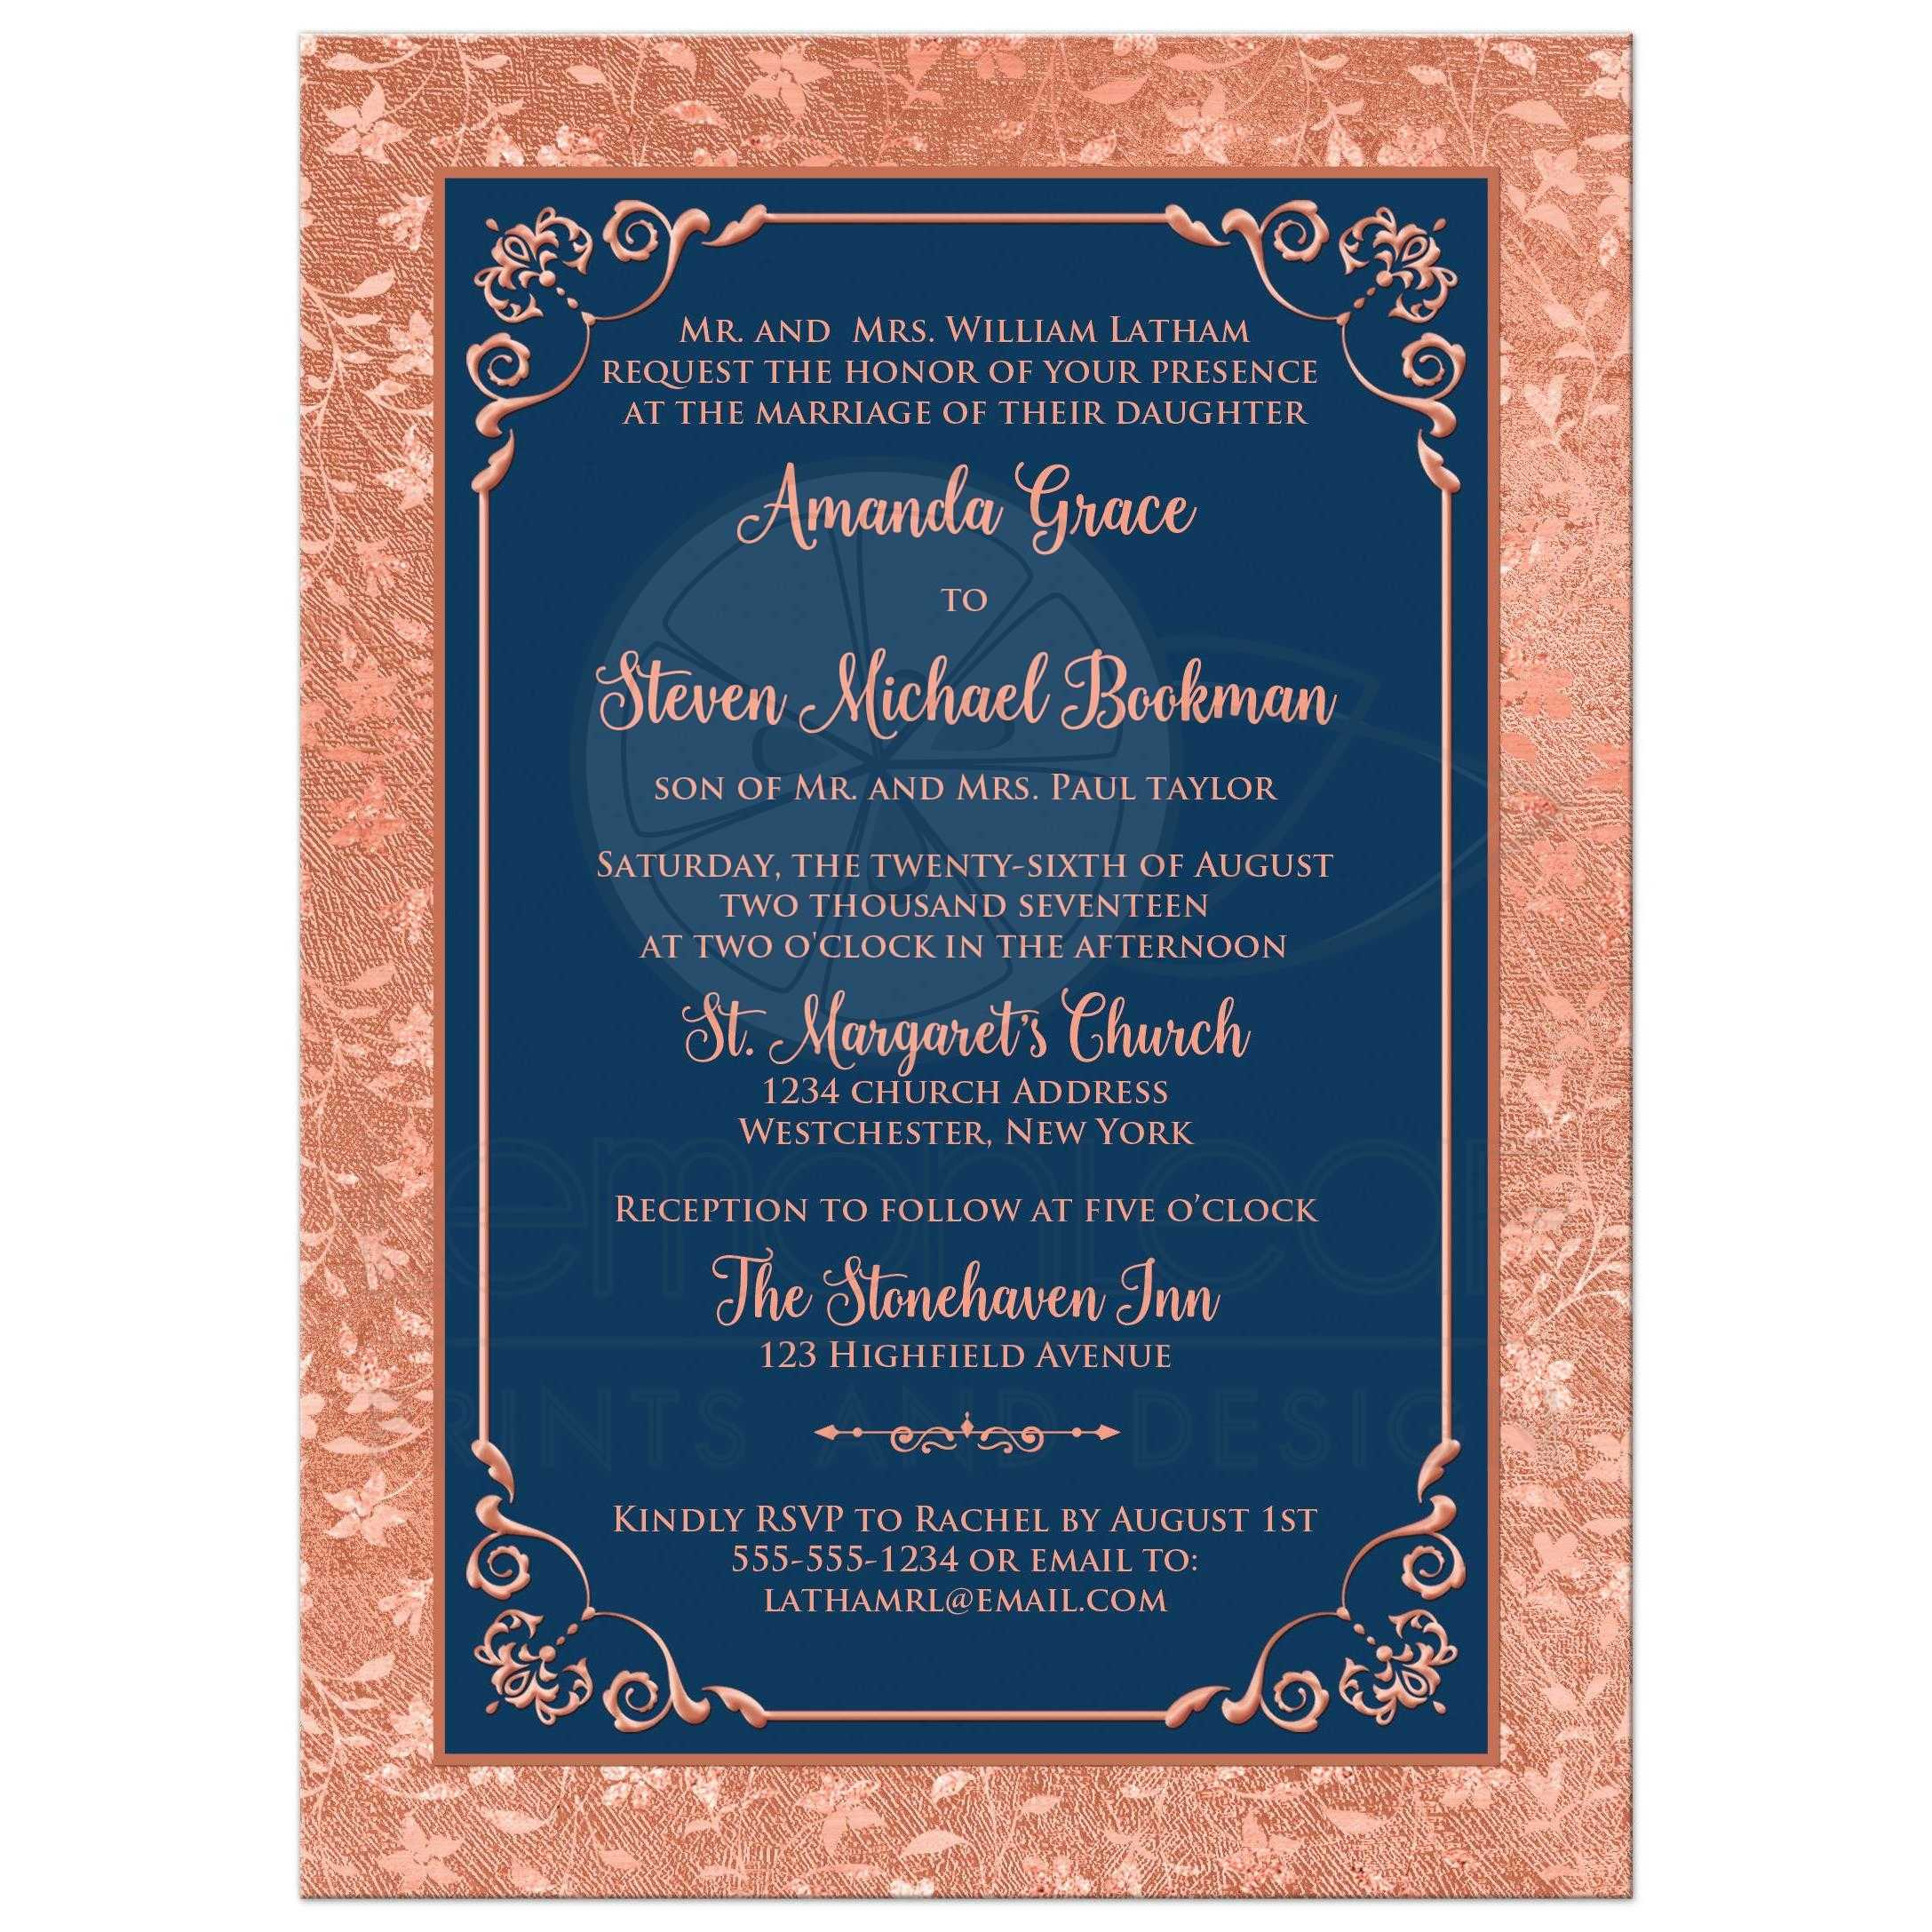 navy blue and orange copper foil wedding invitation with flowers vines and decorative scroll - Navy Blue Wedding Invitations